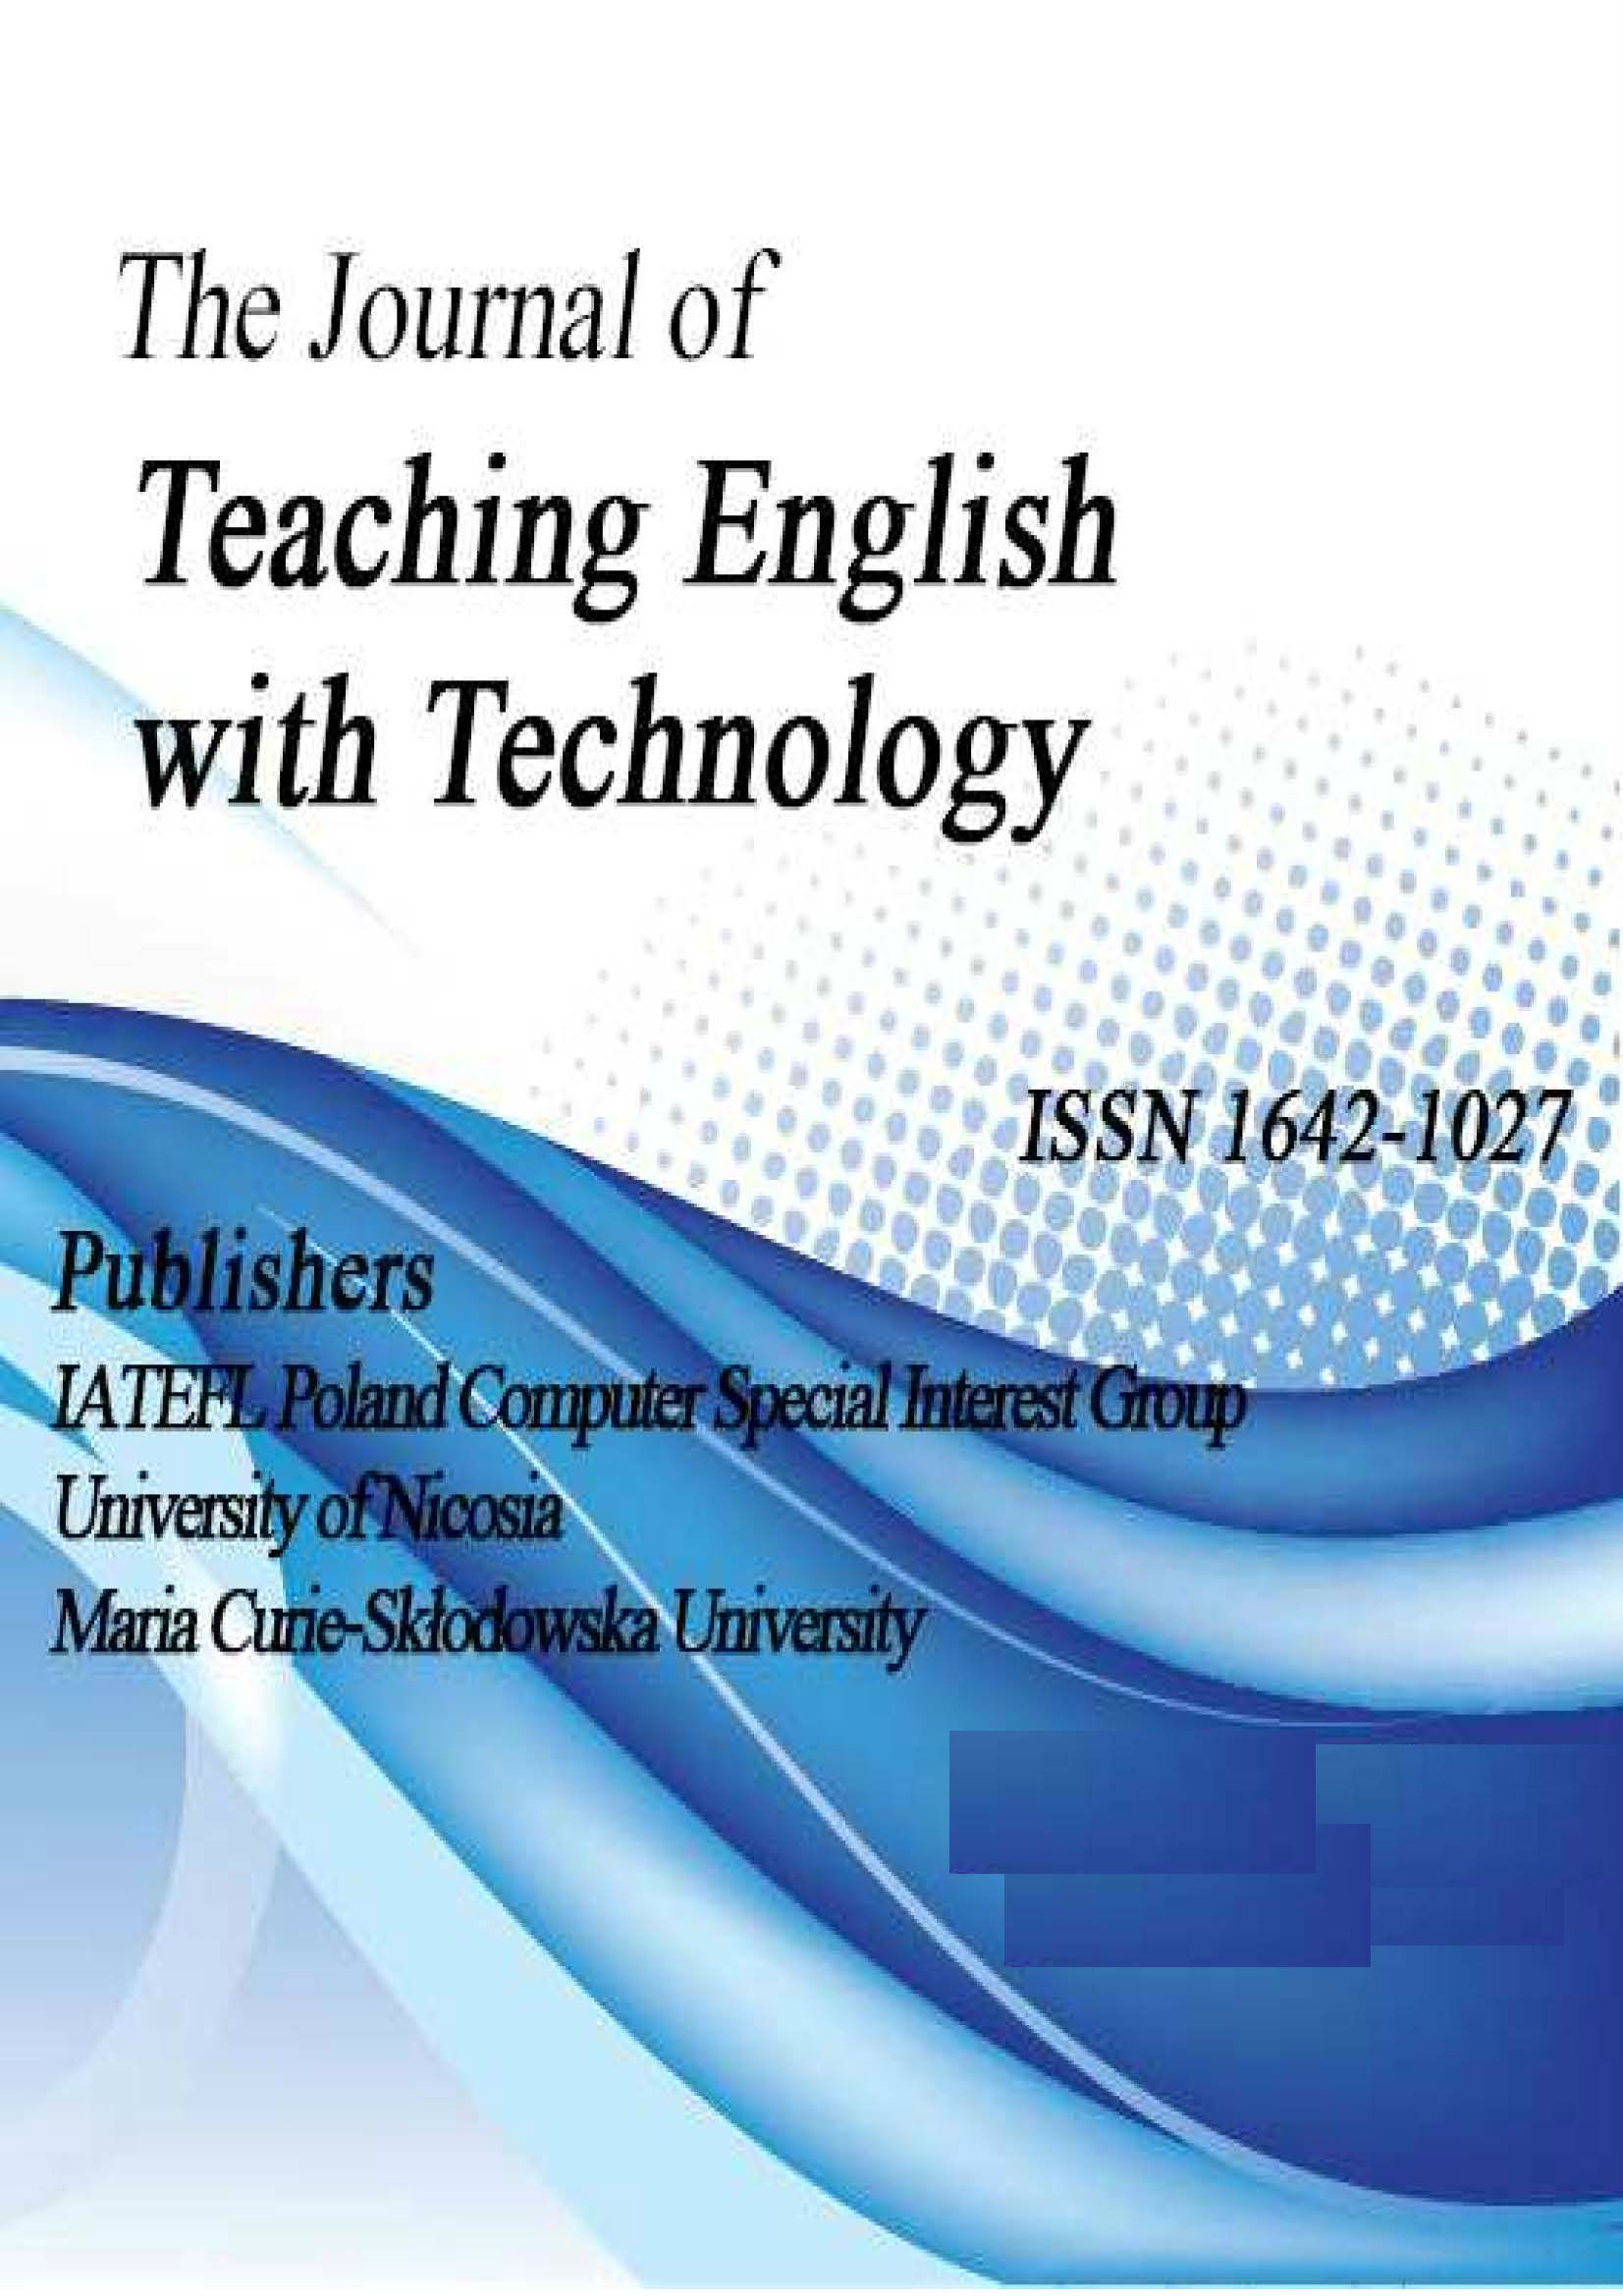 BEST PRACTICES IN USING VIDEO TECHNOLOGY TO PROMOTE SECOND LANGUAGE ACQUISITION Cover Image